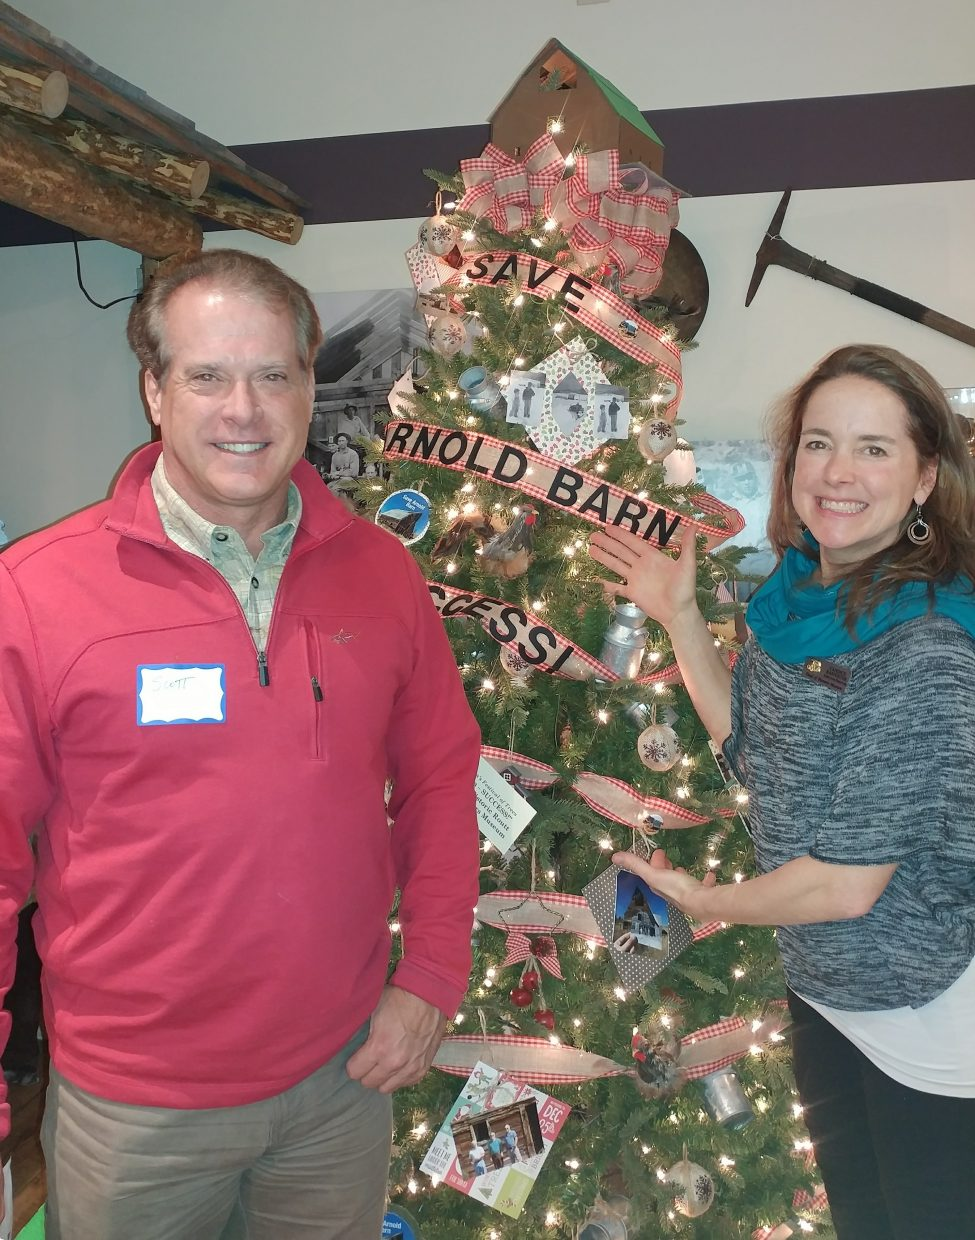 For over 20 years, Conroy Moving and Storage has been donating trucks and labor to deliver trees in support of the Tread of Pioneer Museum's Festival of Trees fundraiser. Scott Lewer, of Conroy Moving and Storage Inc., and Candice Bannister, the museum's executive director, stand next to the Arnold Barn Christmas tree. Sponsored trees were created and designed for the philanthropic benefit of the museum, and on Tuesday, 28 trees were delivered to the businesses and individuals who purchased them. All proceeds benefit the museum.